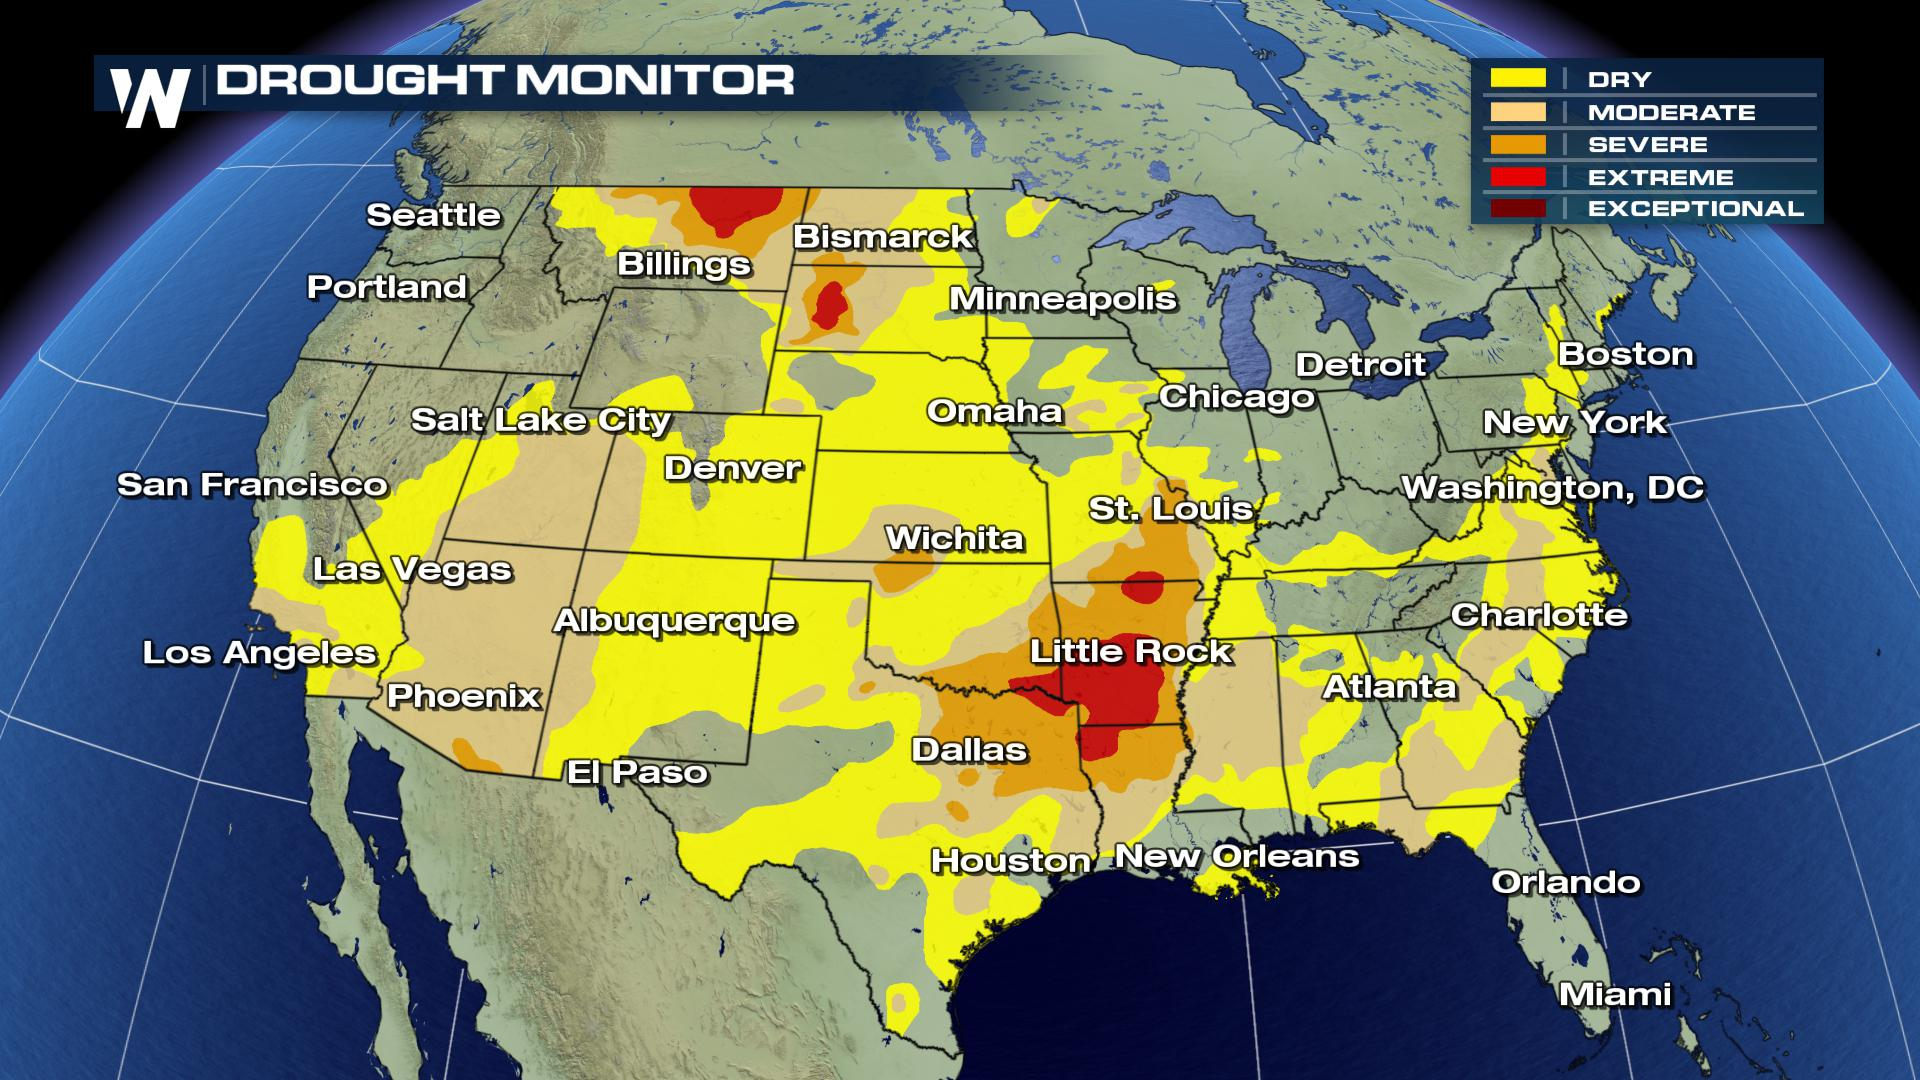 Drought Conditions Spread Across the United States ... on united states national map, united states satellite map, united states road conditions map, united states extreme weather map, united states radar map, united states temperature map, united states annual rainfall map, united states air quality map, united states canada map, united states earthquakes map, united states severe weather map, united states precipitation map, united states uv index map, united states forecast map, united states lightning map, united states surface map, united states wind map,